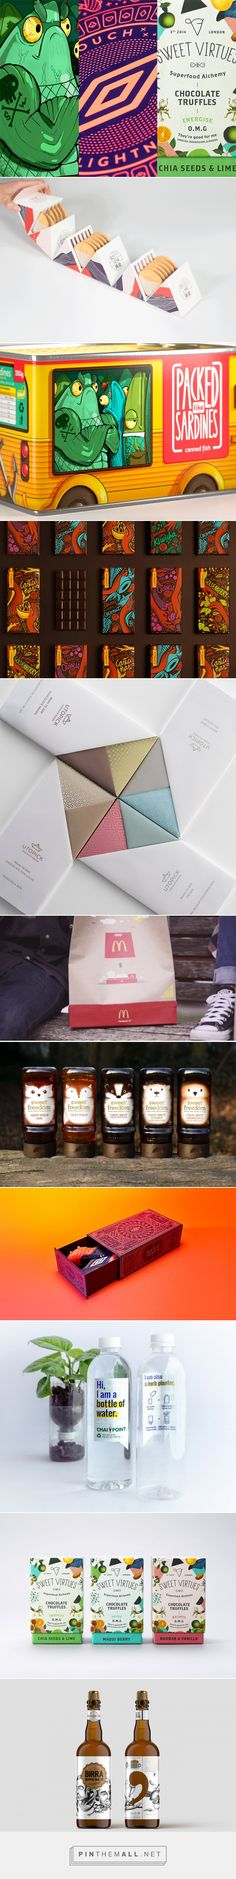 Don't miss the TOP 10 packaging projects for the month of April! http://www.packagingoftheworld.com/2017/05/packaging-you-shouldnt-miss-in-april.html